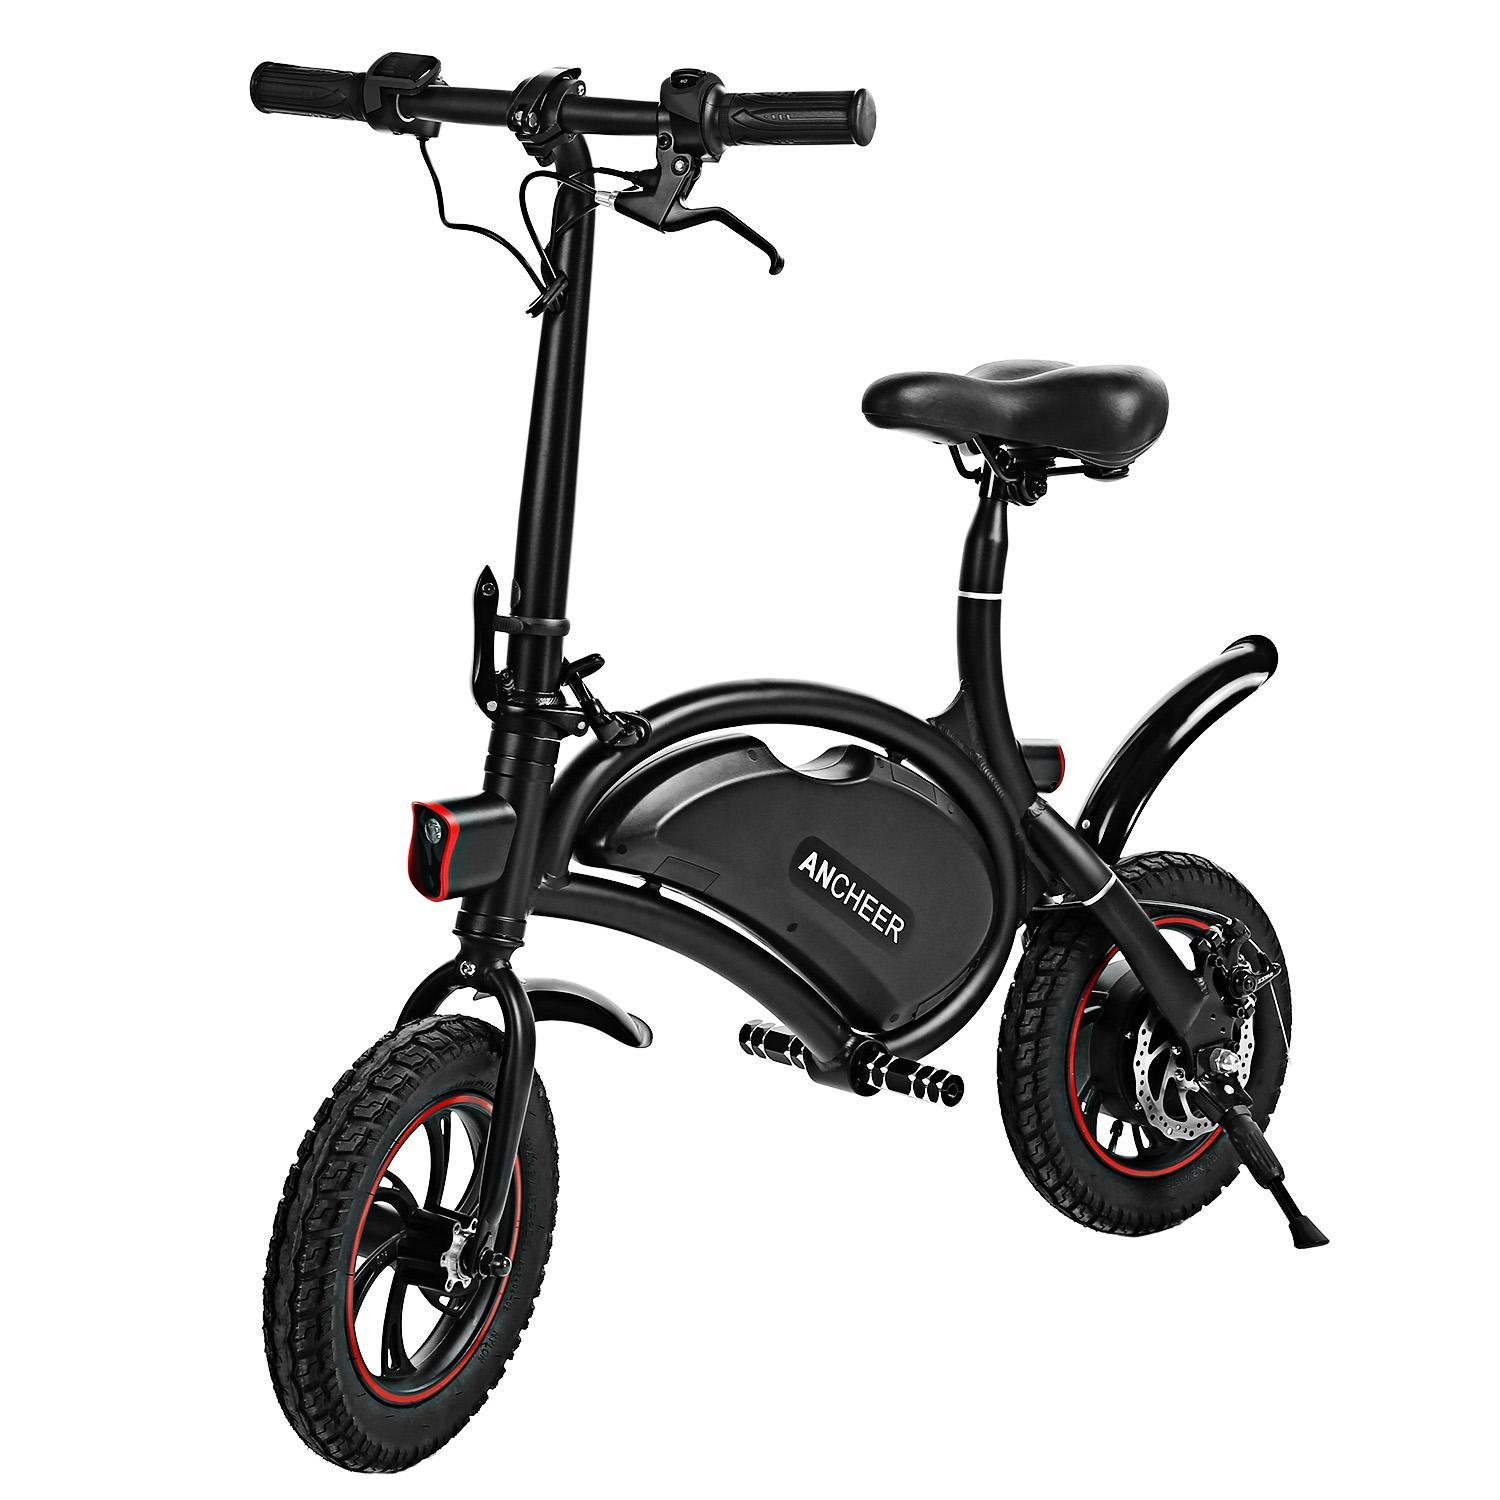 ANCHEER E-bike APP Control Power Plus Folding Electric Bike Portable  Bicycle With 350W 36V 6AH Battery